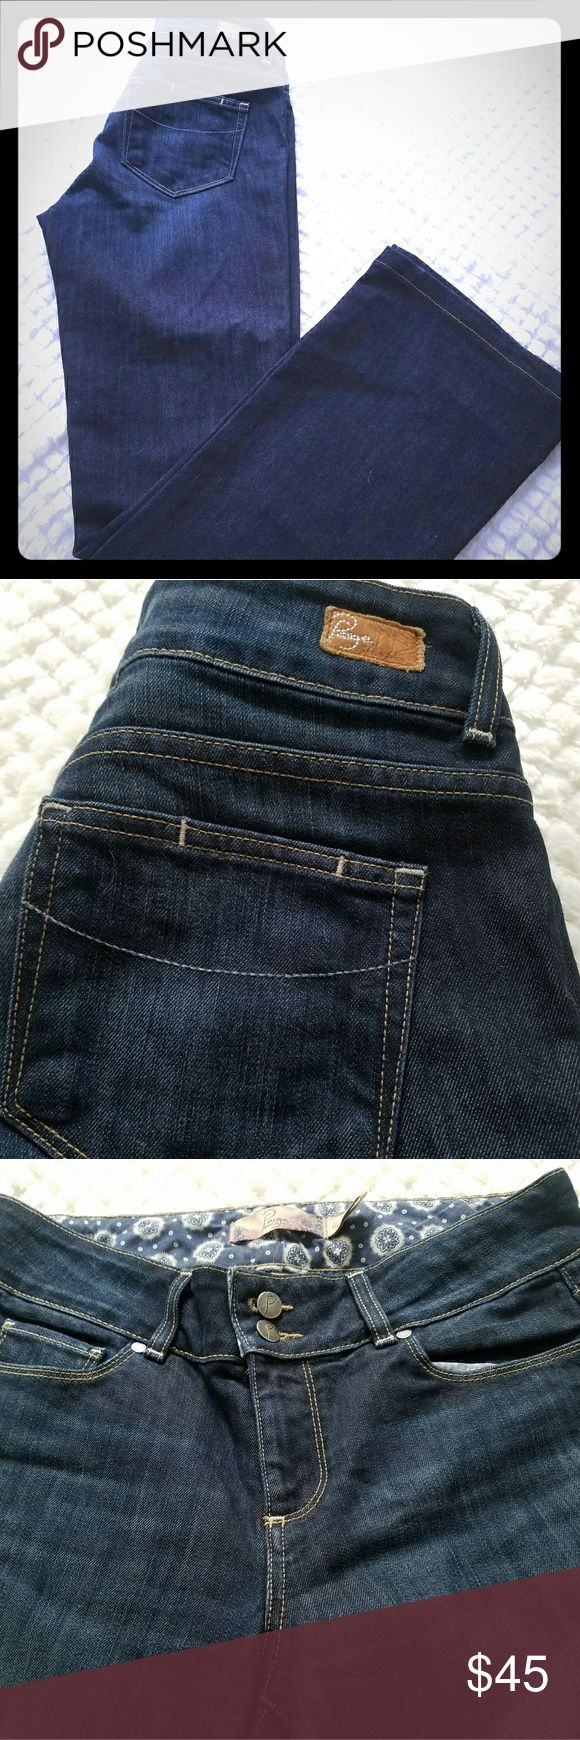 "🎉SALE🎉 Paige Hidden Hills Bootcut Size 29 Darkwash bootcut and in perfect condition, worn only a few times. Inseam- 31""  Rise-9"". Smoke-free home.  WEEKEND SALE!! **PRICE FIRM** (unless bundled) Paige Jeans Jeans Boot Cut"